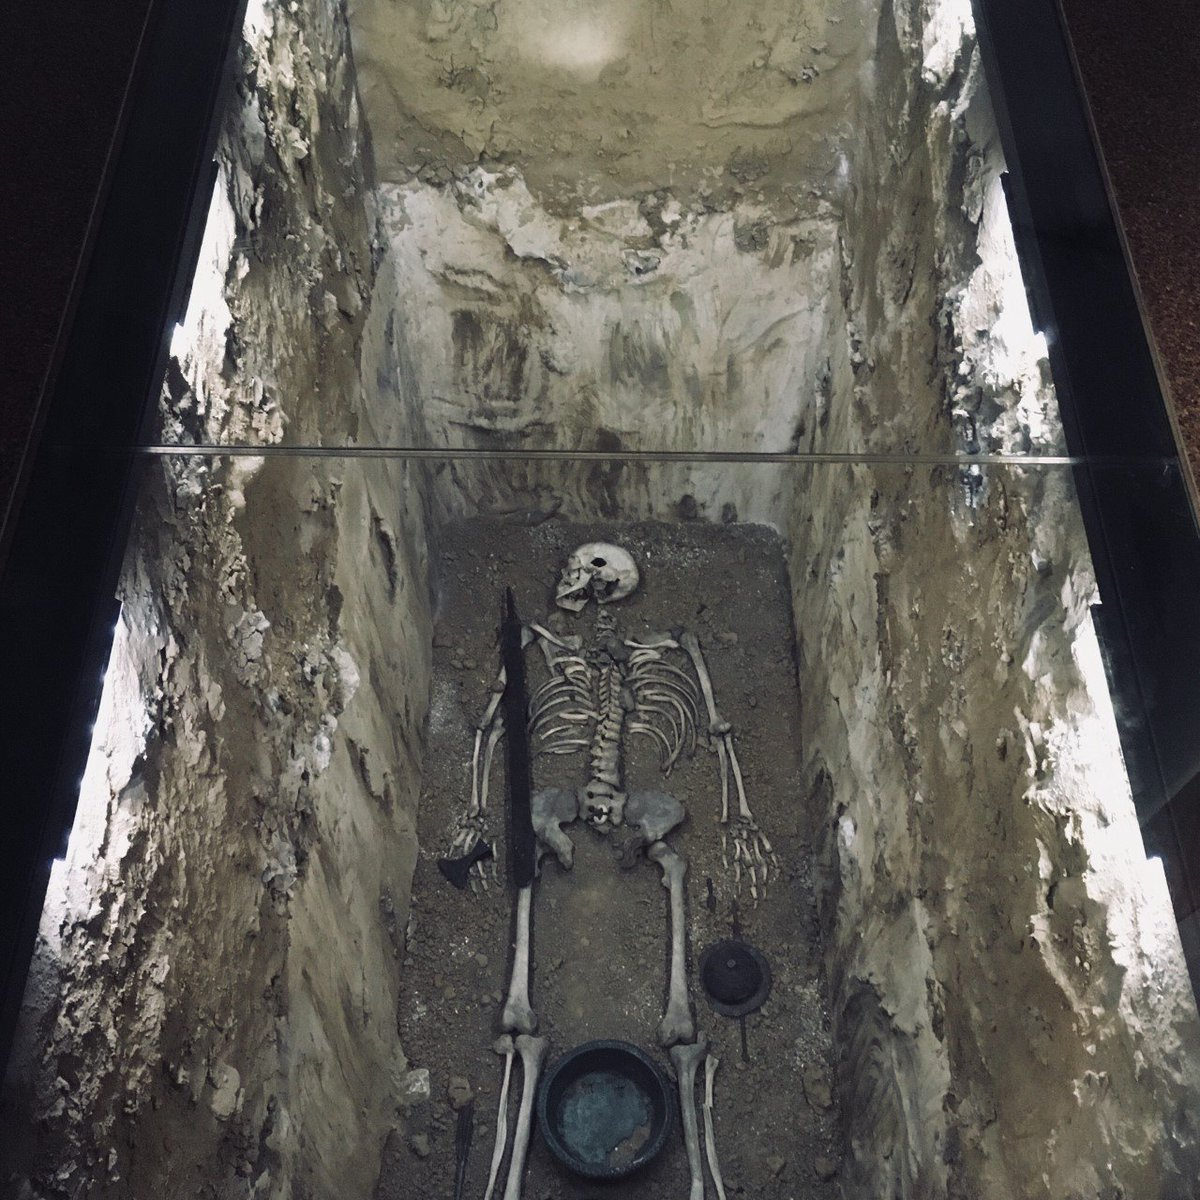 Spooky scary skeletons ...🎶  Happy Halloween ! This guy right here is only waiting for tonight to rise from the grave and celebrate...  (Currently exhibited in our Merovingian section)  #ahmbrussels #halloween #skeletons https://t.co/UXLH97T75z